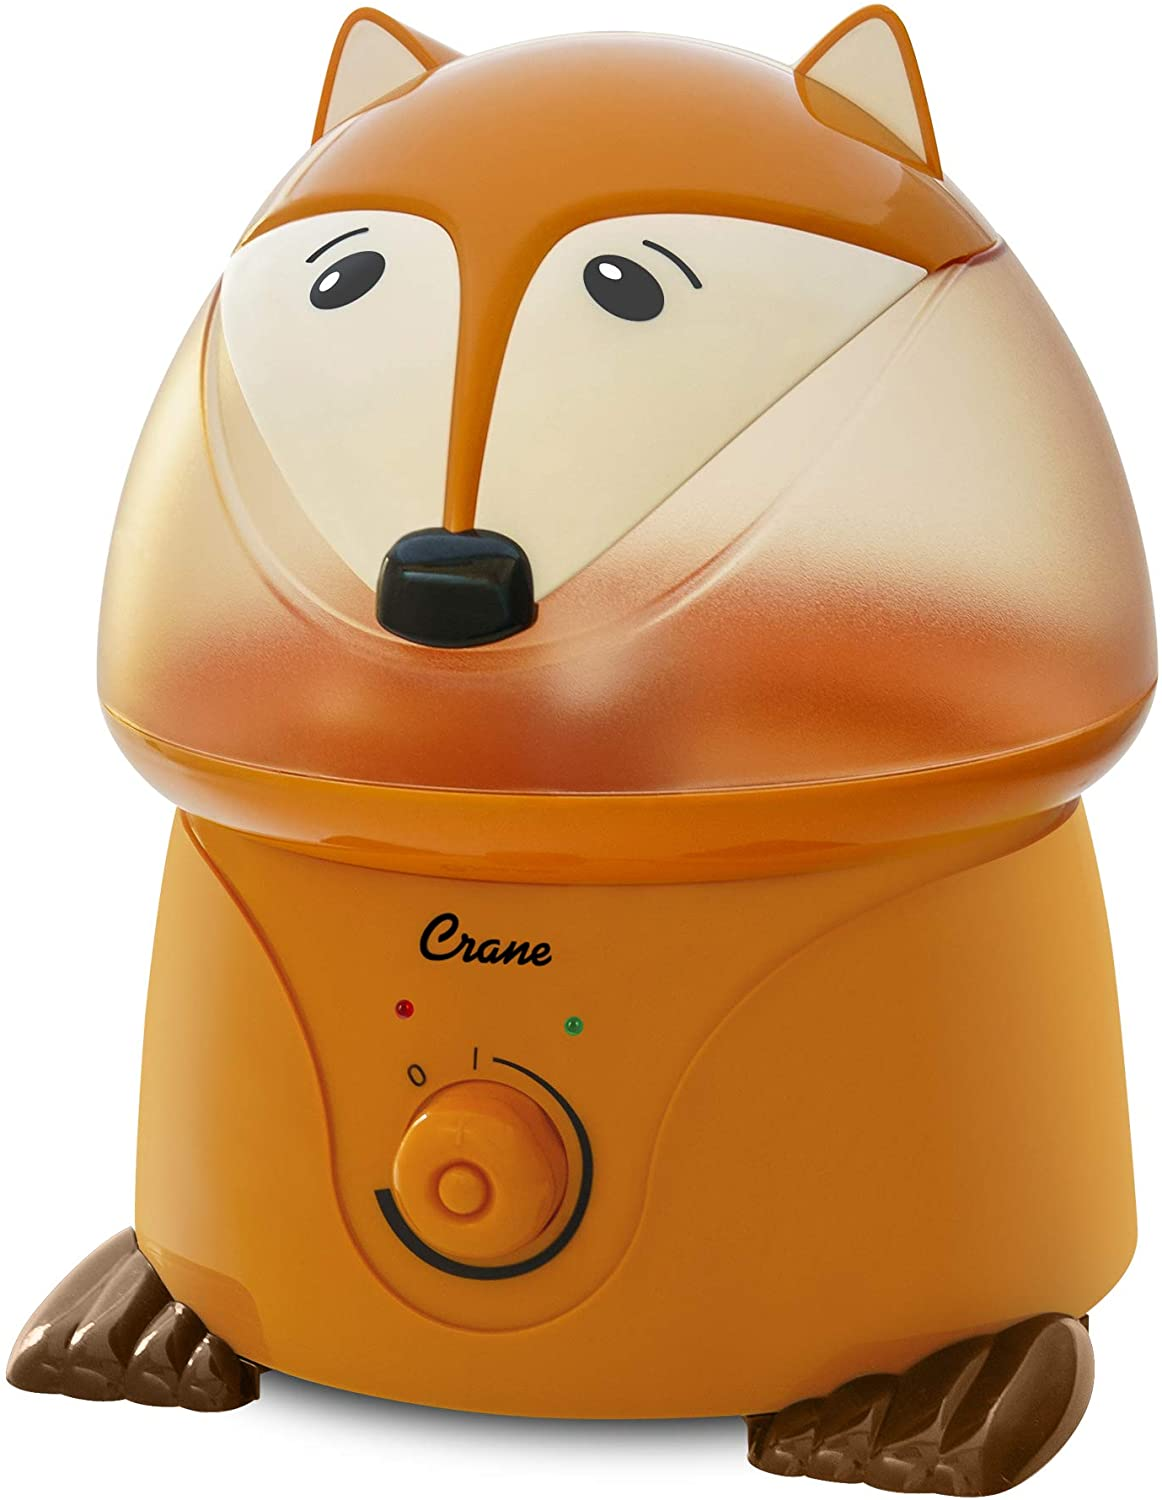 Crane Adorables Ultrasonic Cool Mist Humidifier, Filter Free, 1 Gallon, 24 Hour Run Time, Whisper Quite, for Home Bedroom Baby Nursery and Office, Fox